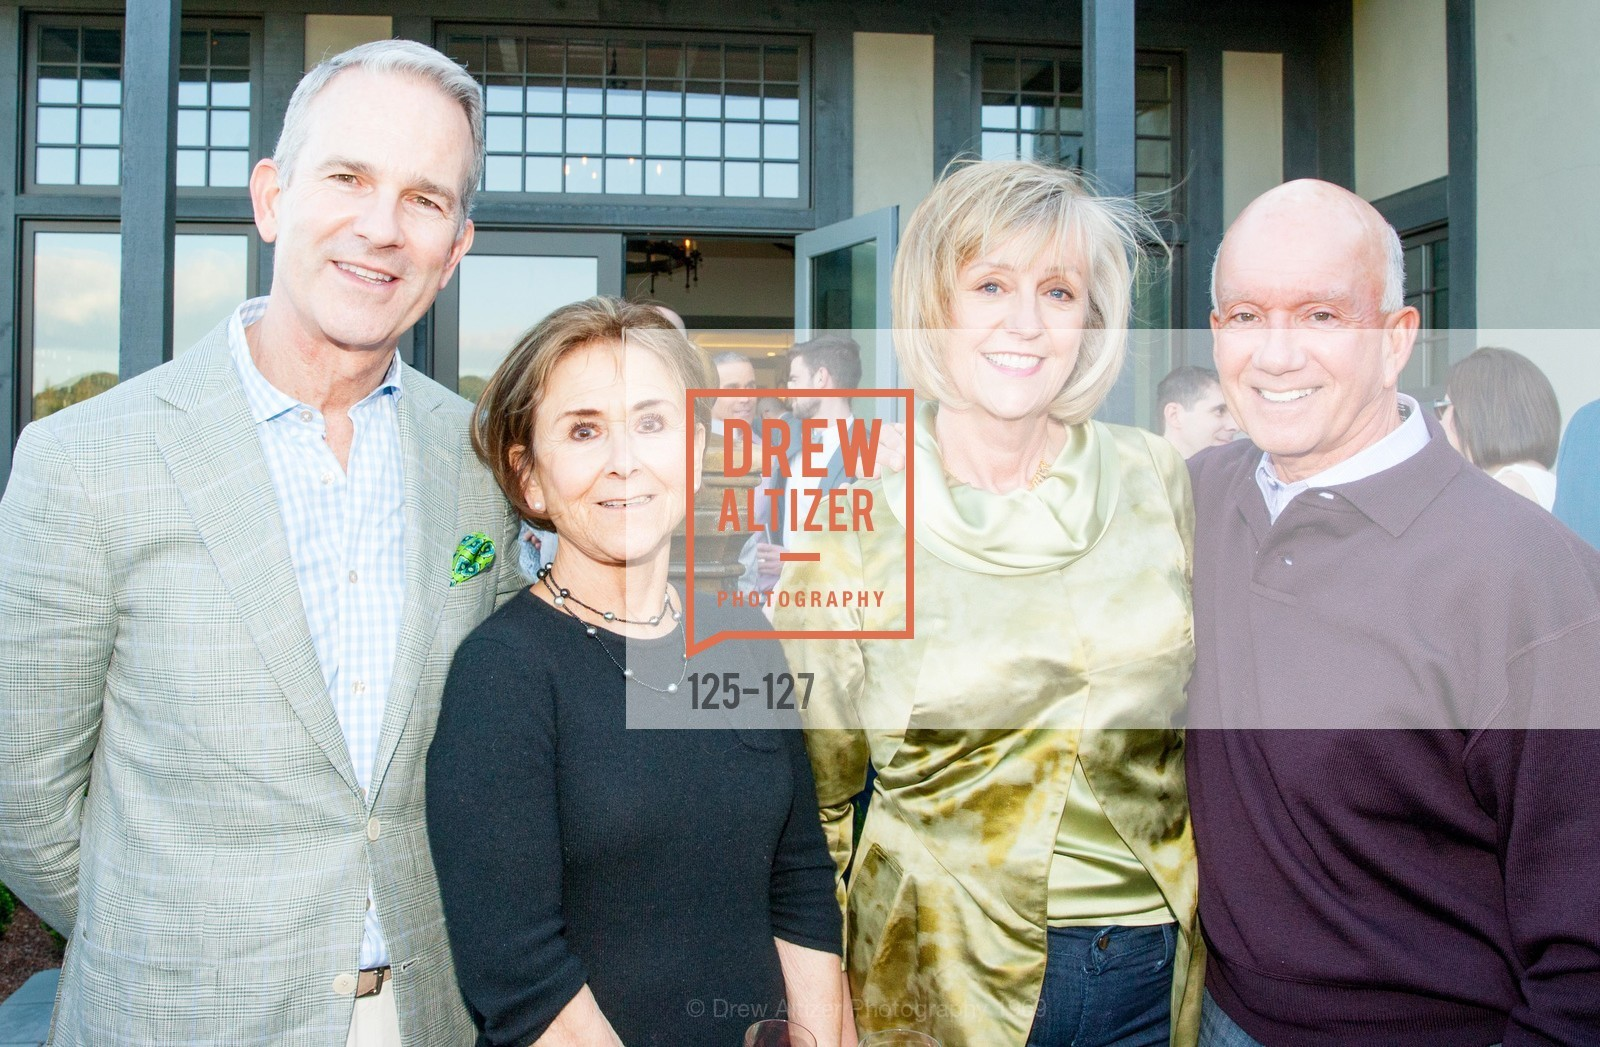 Jeffrey Gibson, Shelly Santa, Sheri Morgensen, Bob Morgensen, An Evening in the Vineyard hosted by JACK CALHOUN & TRENT NORRIS, Jack Calhoun & Trent Norris Vineyard. 3393 Dry Creek Road, Healdsburg CA 95448, May 22nd, 2015,Drew Altizer, Drew Altizer Photography, full-service agency, private events, San Francisco photographer, photographer california